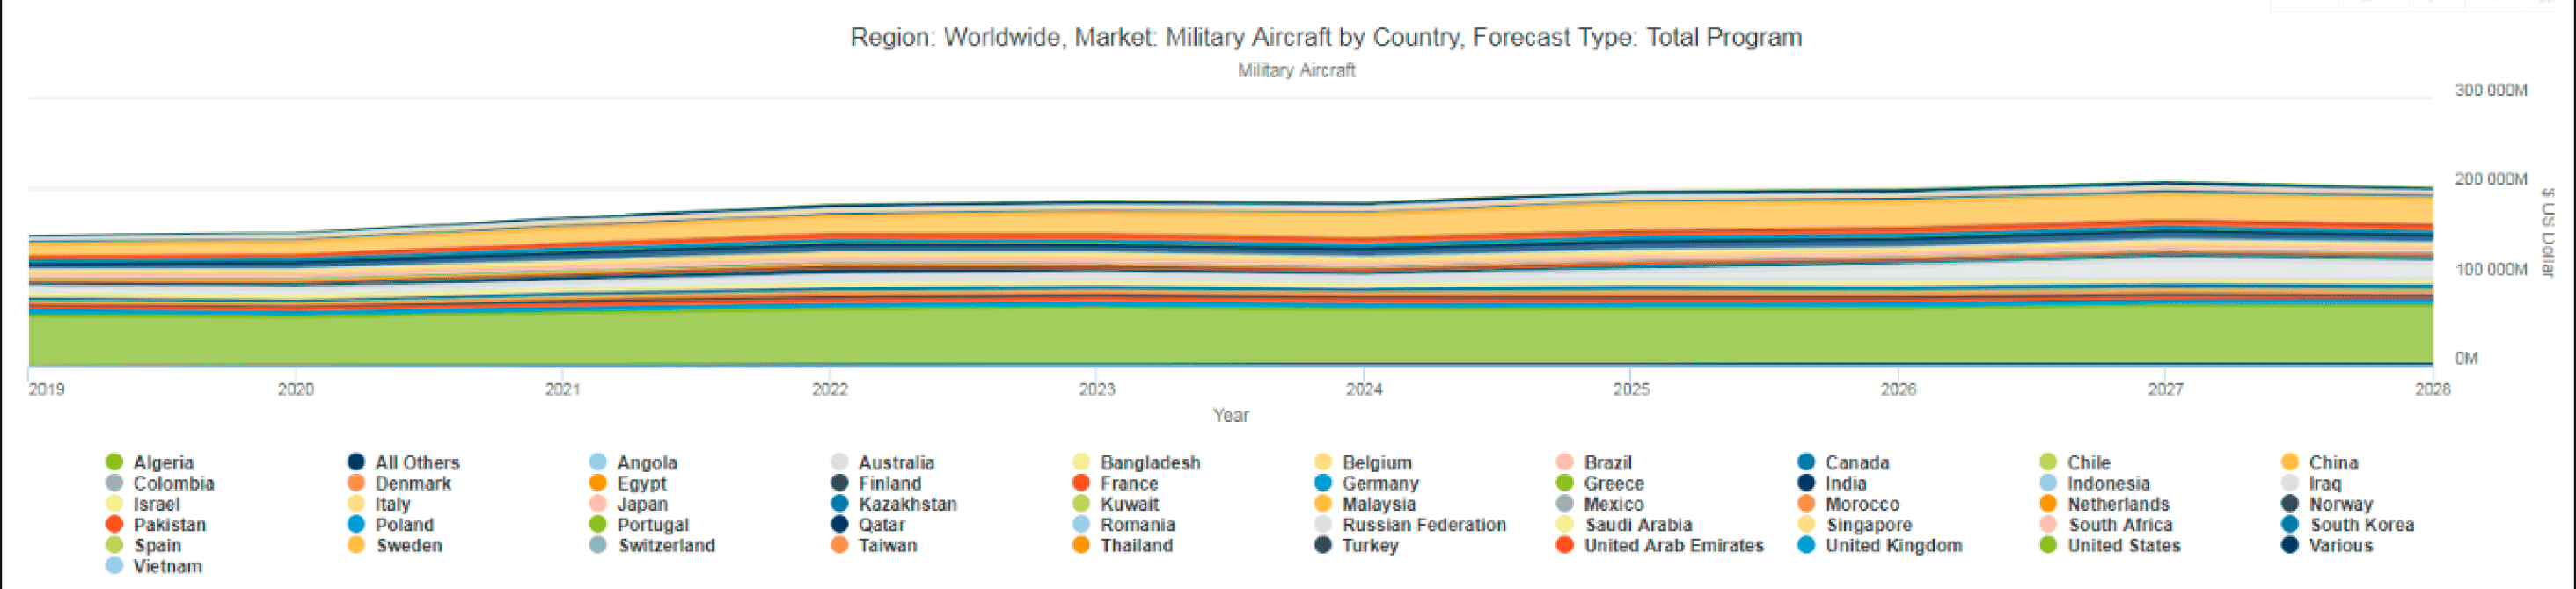 image of markets forecast military aircraft by country